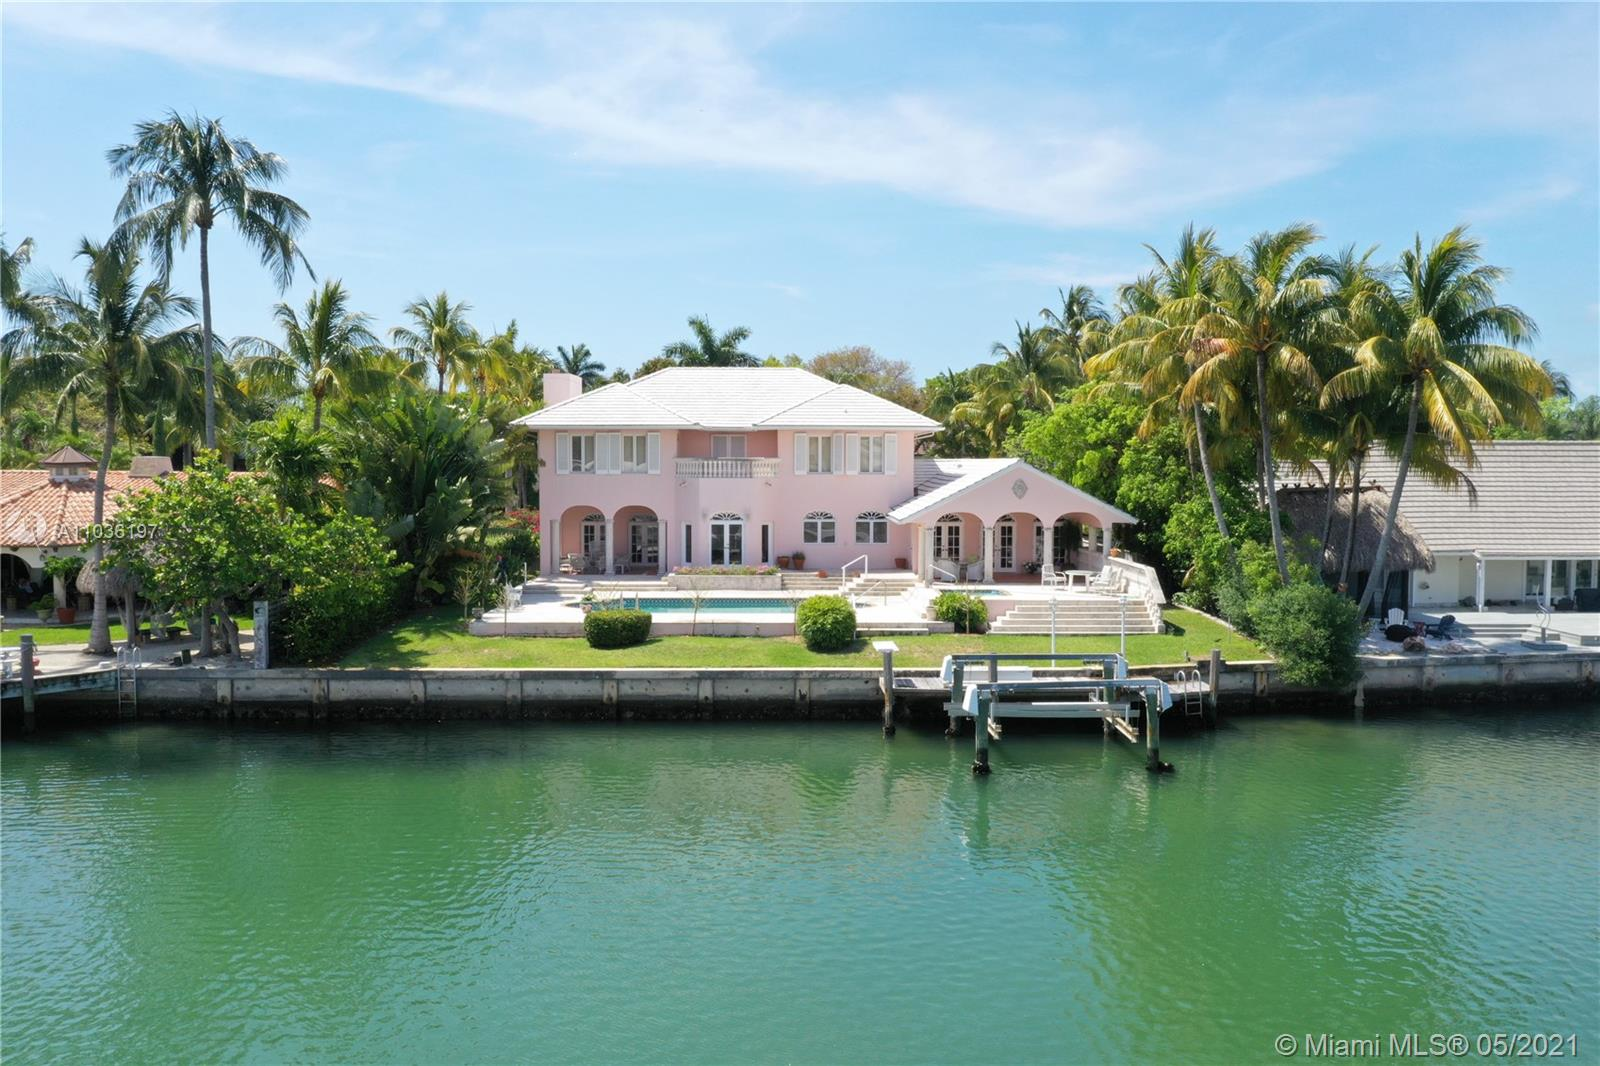 WATERFRONT LIVING ON THE WIDE PART OF THE CANAL. THIS ELEVATED HOME WAS CUSTOM BUILT BY AND FOR THE MACKLE FAMILY IN 1989. THREE OVERSIZED BEDROOMS AND THREE AND 1/2 BATHS. HIGH CEILING THROUGHOUT. TWO CAR GARAGE, FORMAL LIVING ROOM, FORMAL DINING ROOM, FAMILY ROOM AND HUGE EAT IN KITCHEN. SPACIOUS POOL AND PATIO AREA OVERLOOKING WIDE BOAT TURNING BASIN. DOCK AND BOAT LIFT.